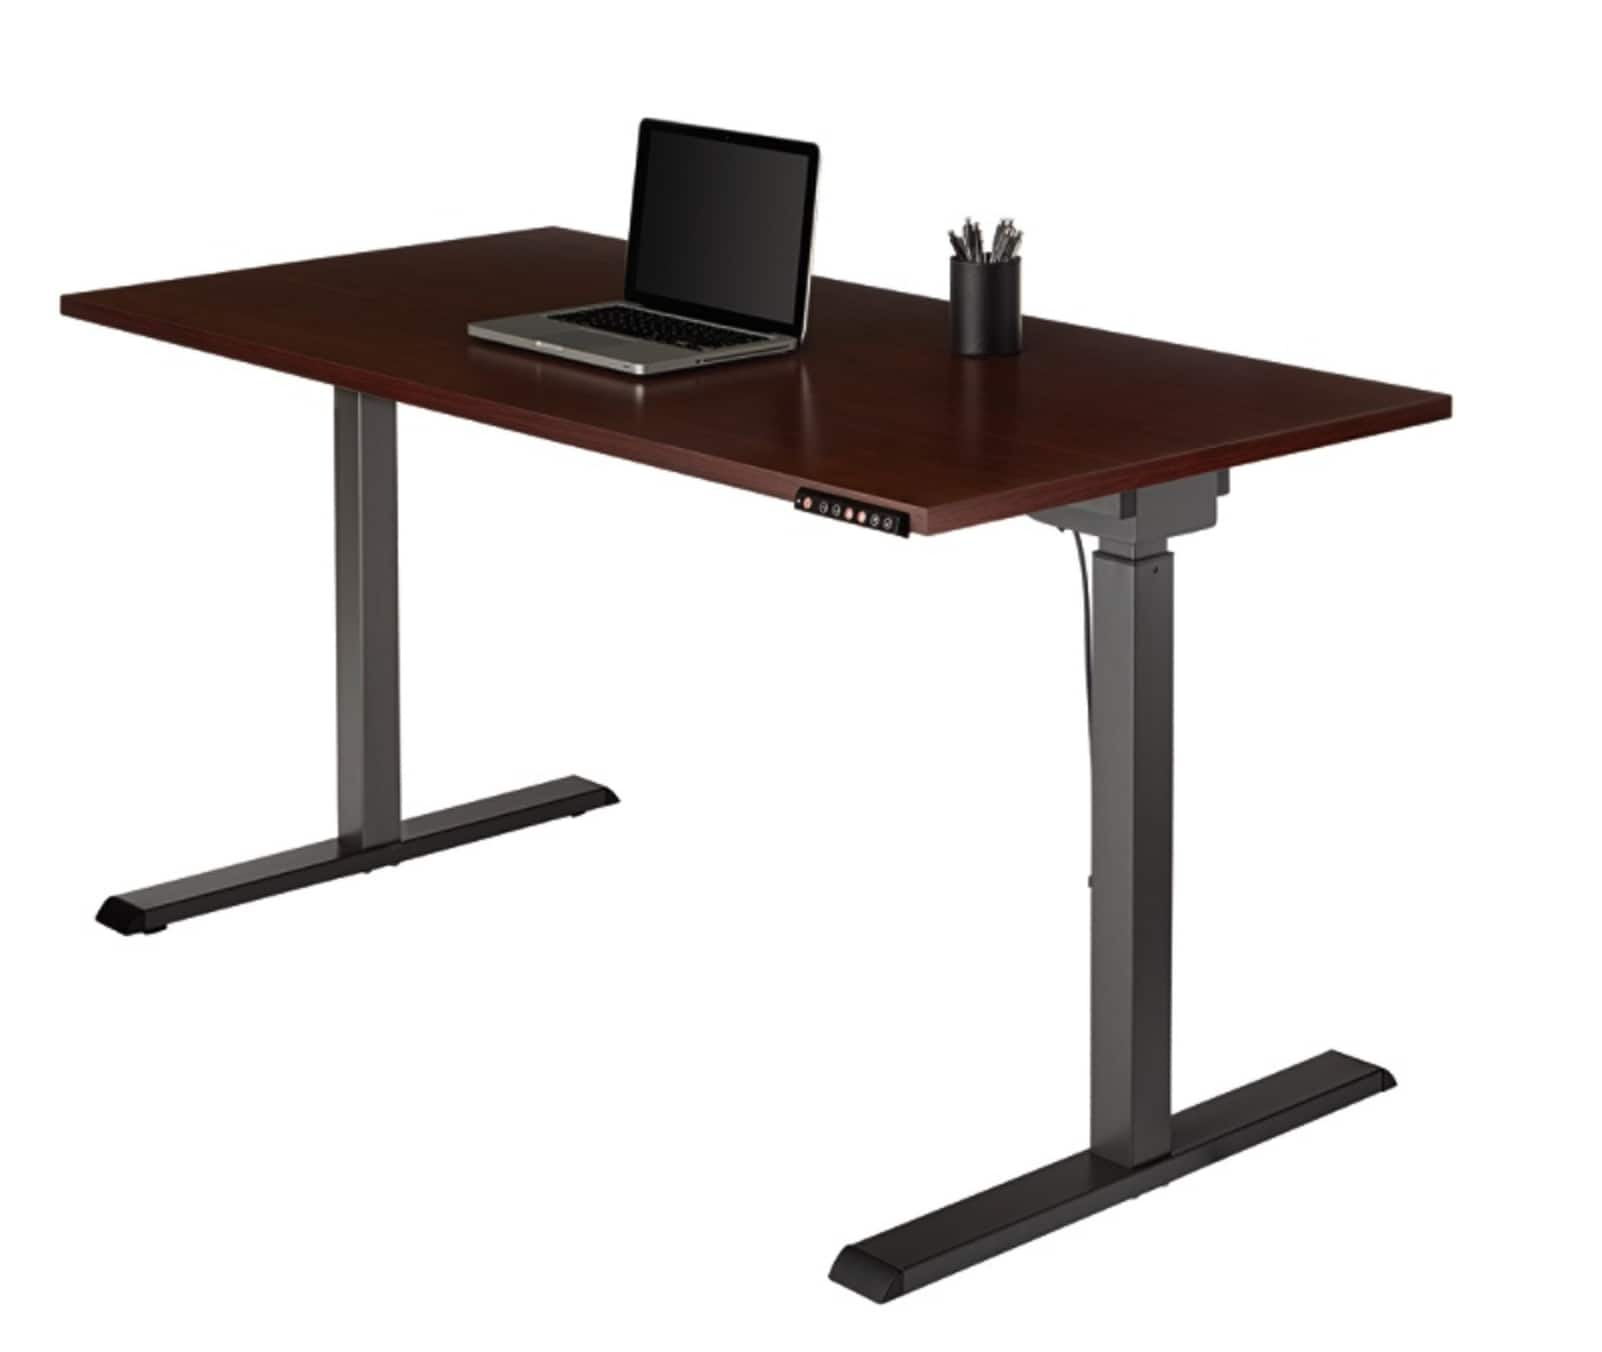 Realspace Magellan Pneumatic ELECTRIC Stand Up Height-Adjustable Desk (Cherry) $280 w/ Email Code + Store Pickup